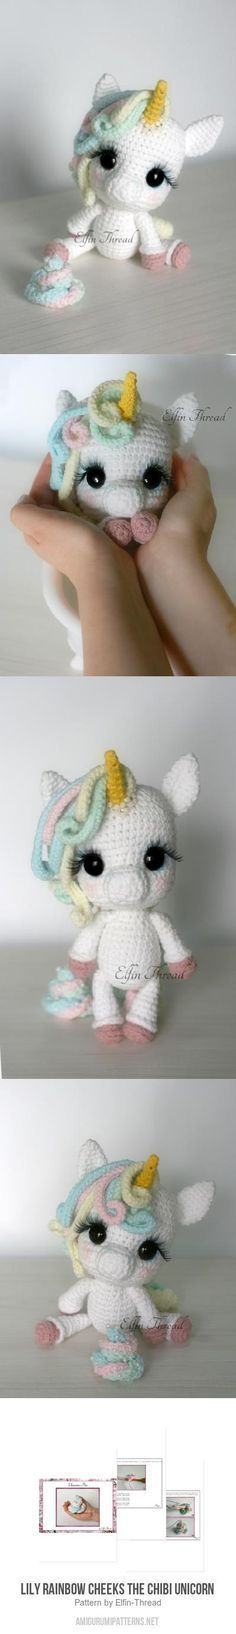 Lily Rainbow Cheeks the Chibi Unicorn amigurumi pattern